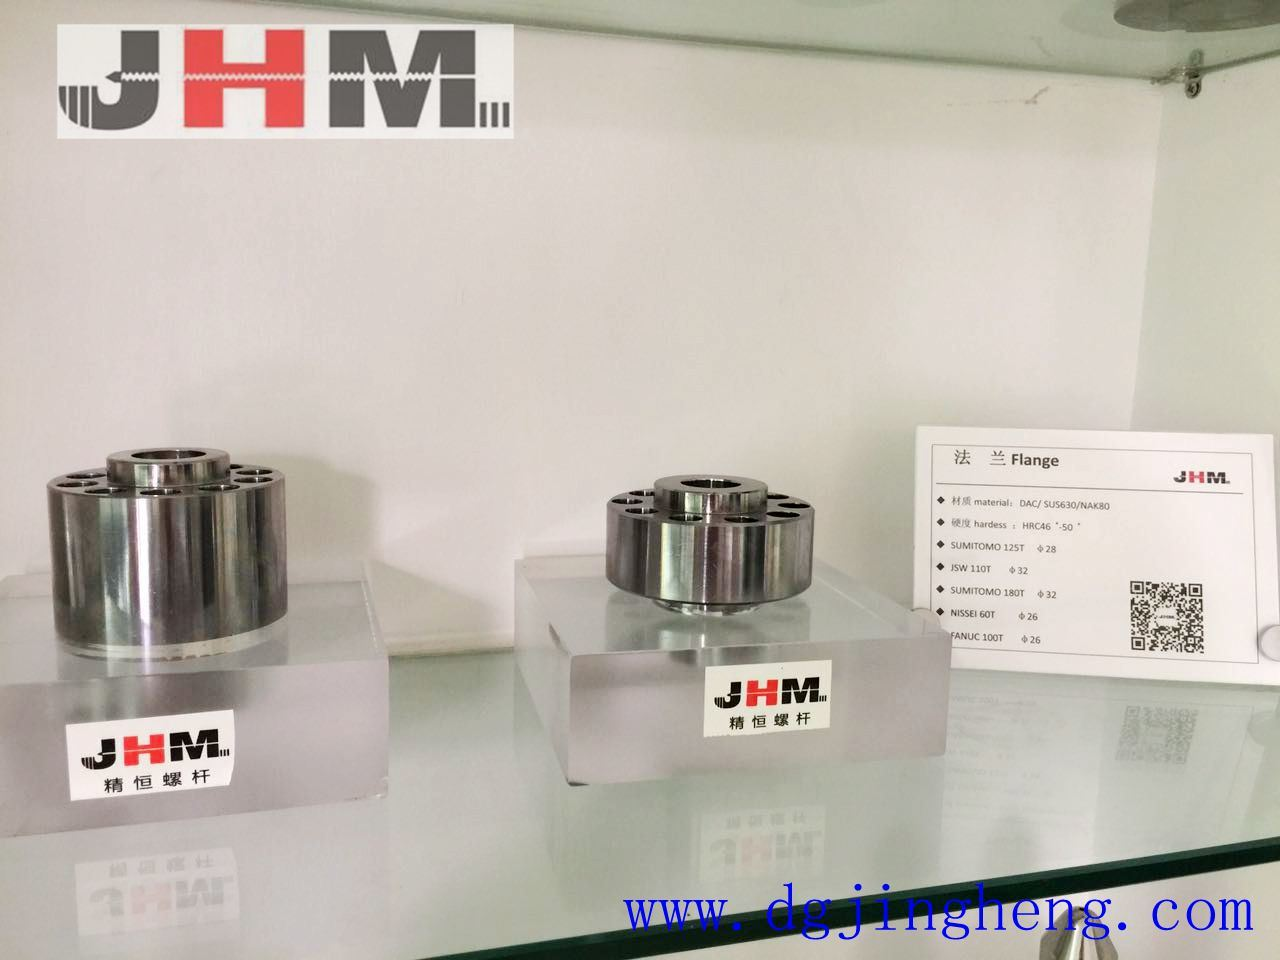 Flange for Injection Molding Machine